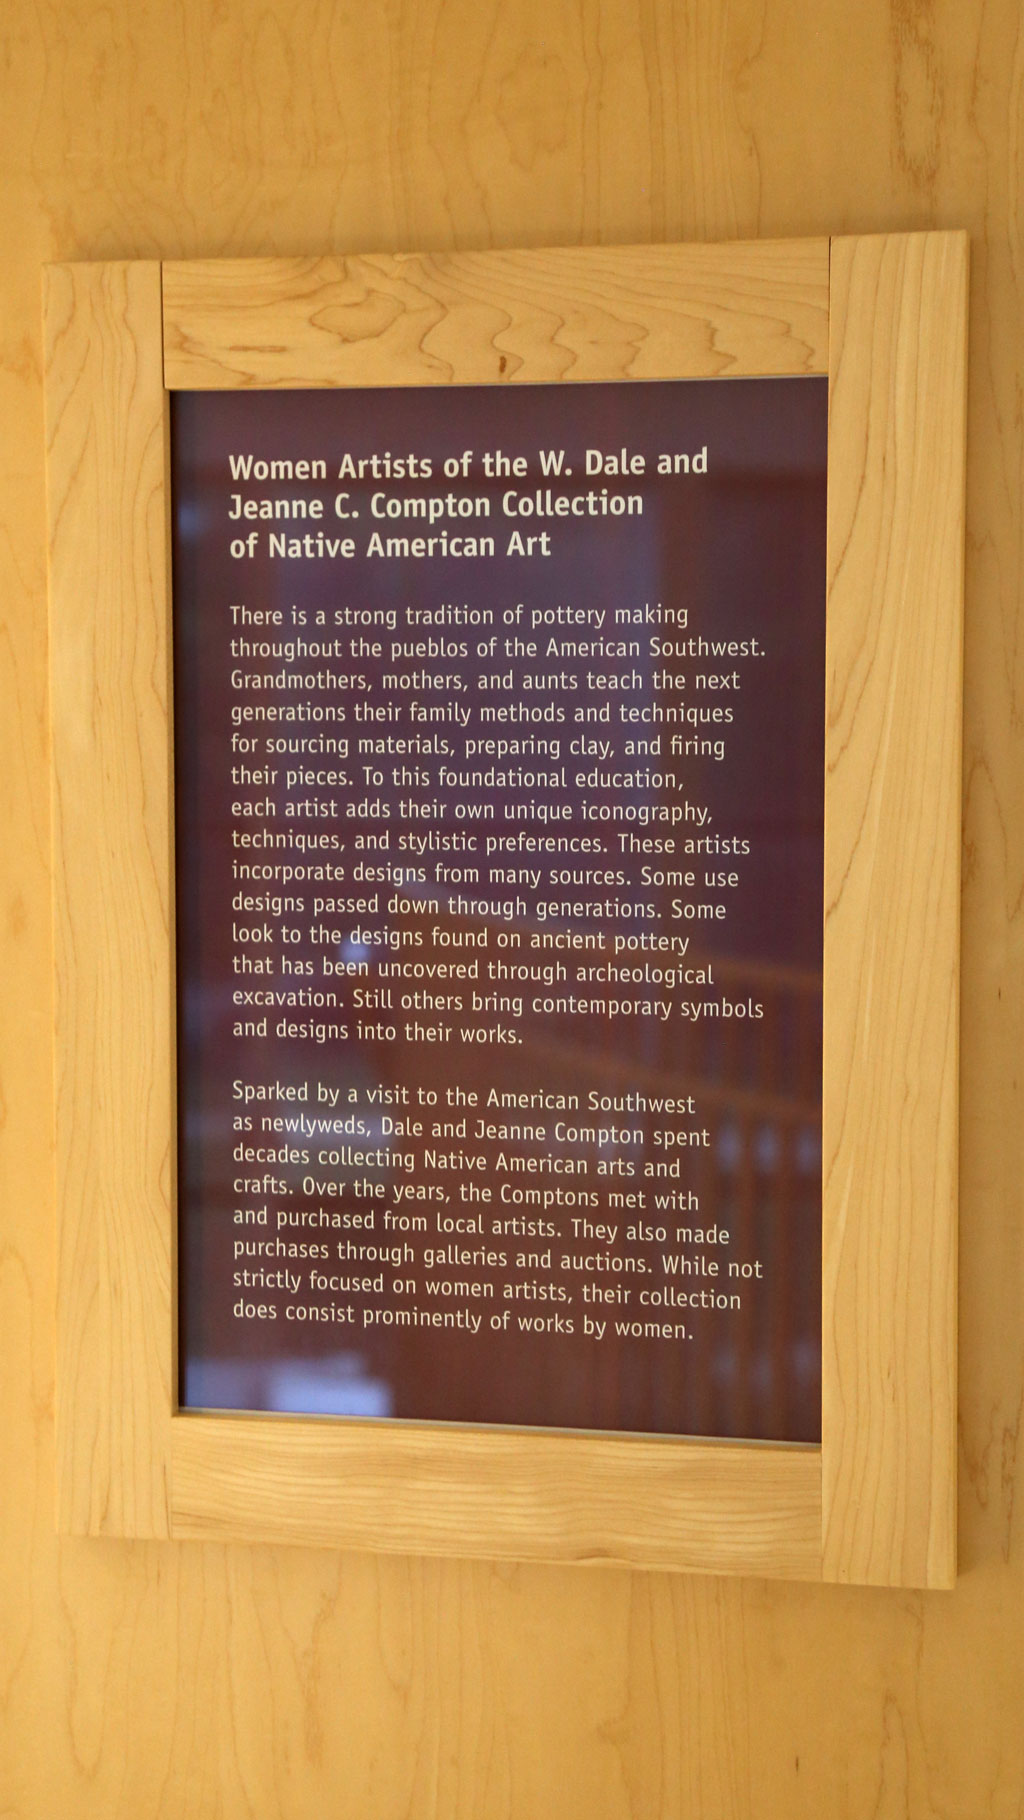 general information about the exhibit